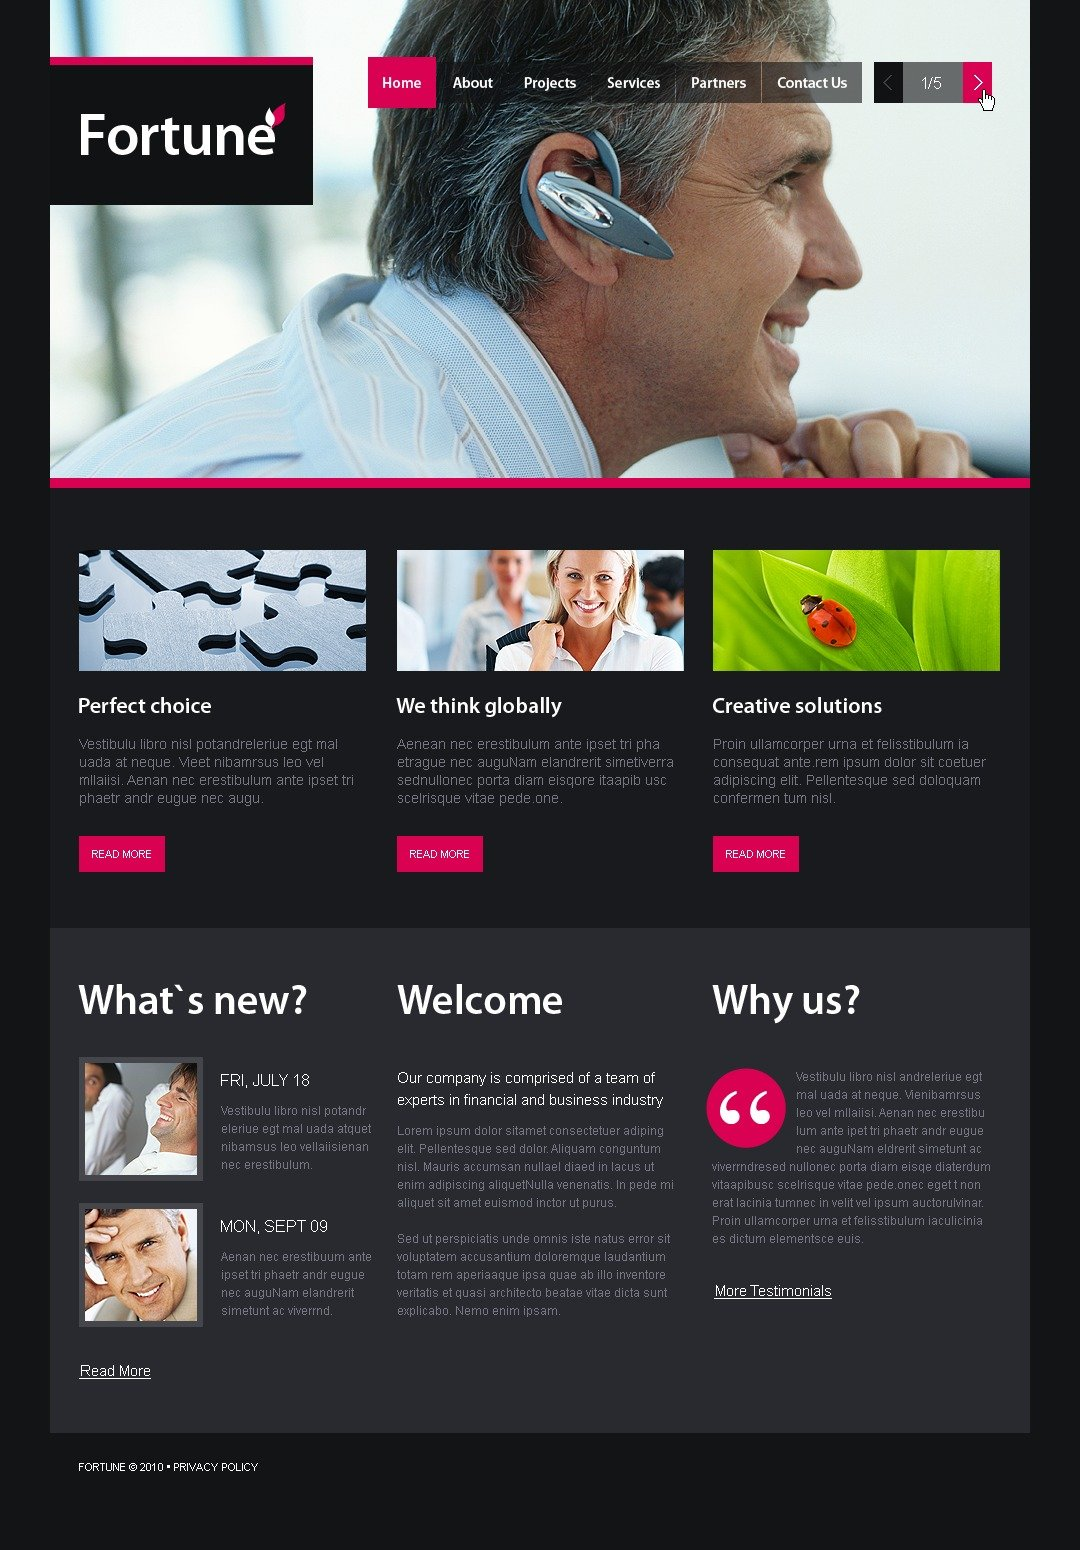 The Fortune Business Company PSD Design 54432, one of the best PSD templates of its kind (business, wide, jquery), also known as fortune business company PSD template, corporate solutions PSD template, innovations PSD template, contacts PSD template, service PSD template, support PSD template, information dealer PSD template, stocks PSD template, team PSD template, success PSD template, money PSD template, marketing PSD template, director PSD template, manager PSD template, analytics PSD template, planning PSD template, limited PSD template, office PSD template, sales and related with fortune business company, corporate solutions, innovations, contacts, service, support, information dealer, stocks, team, success, money, marketing, director, manager, analytics, planning, limited, office, sales, etc.